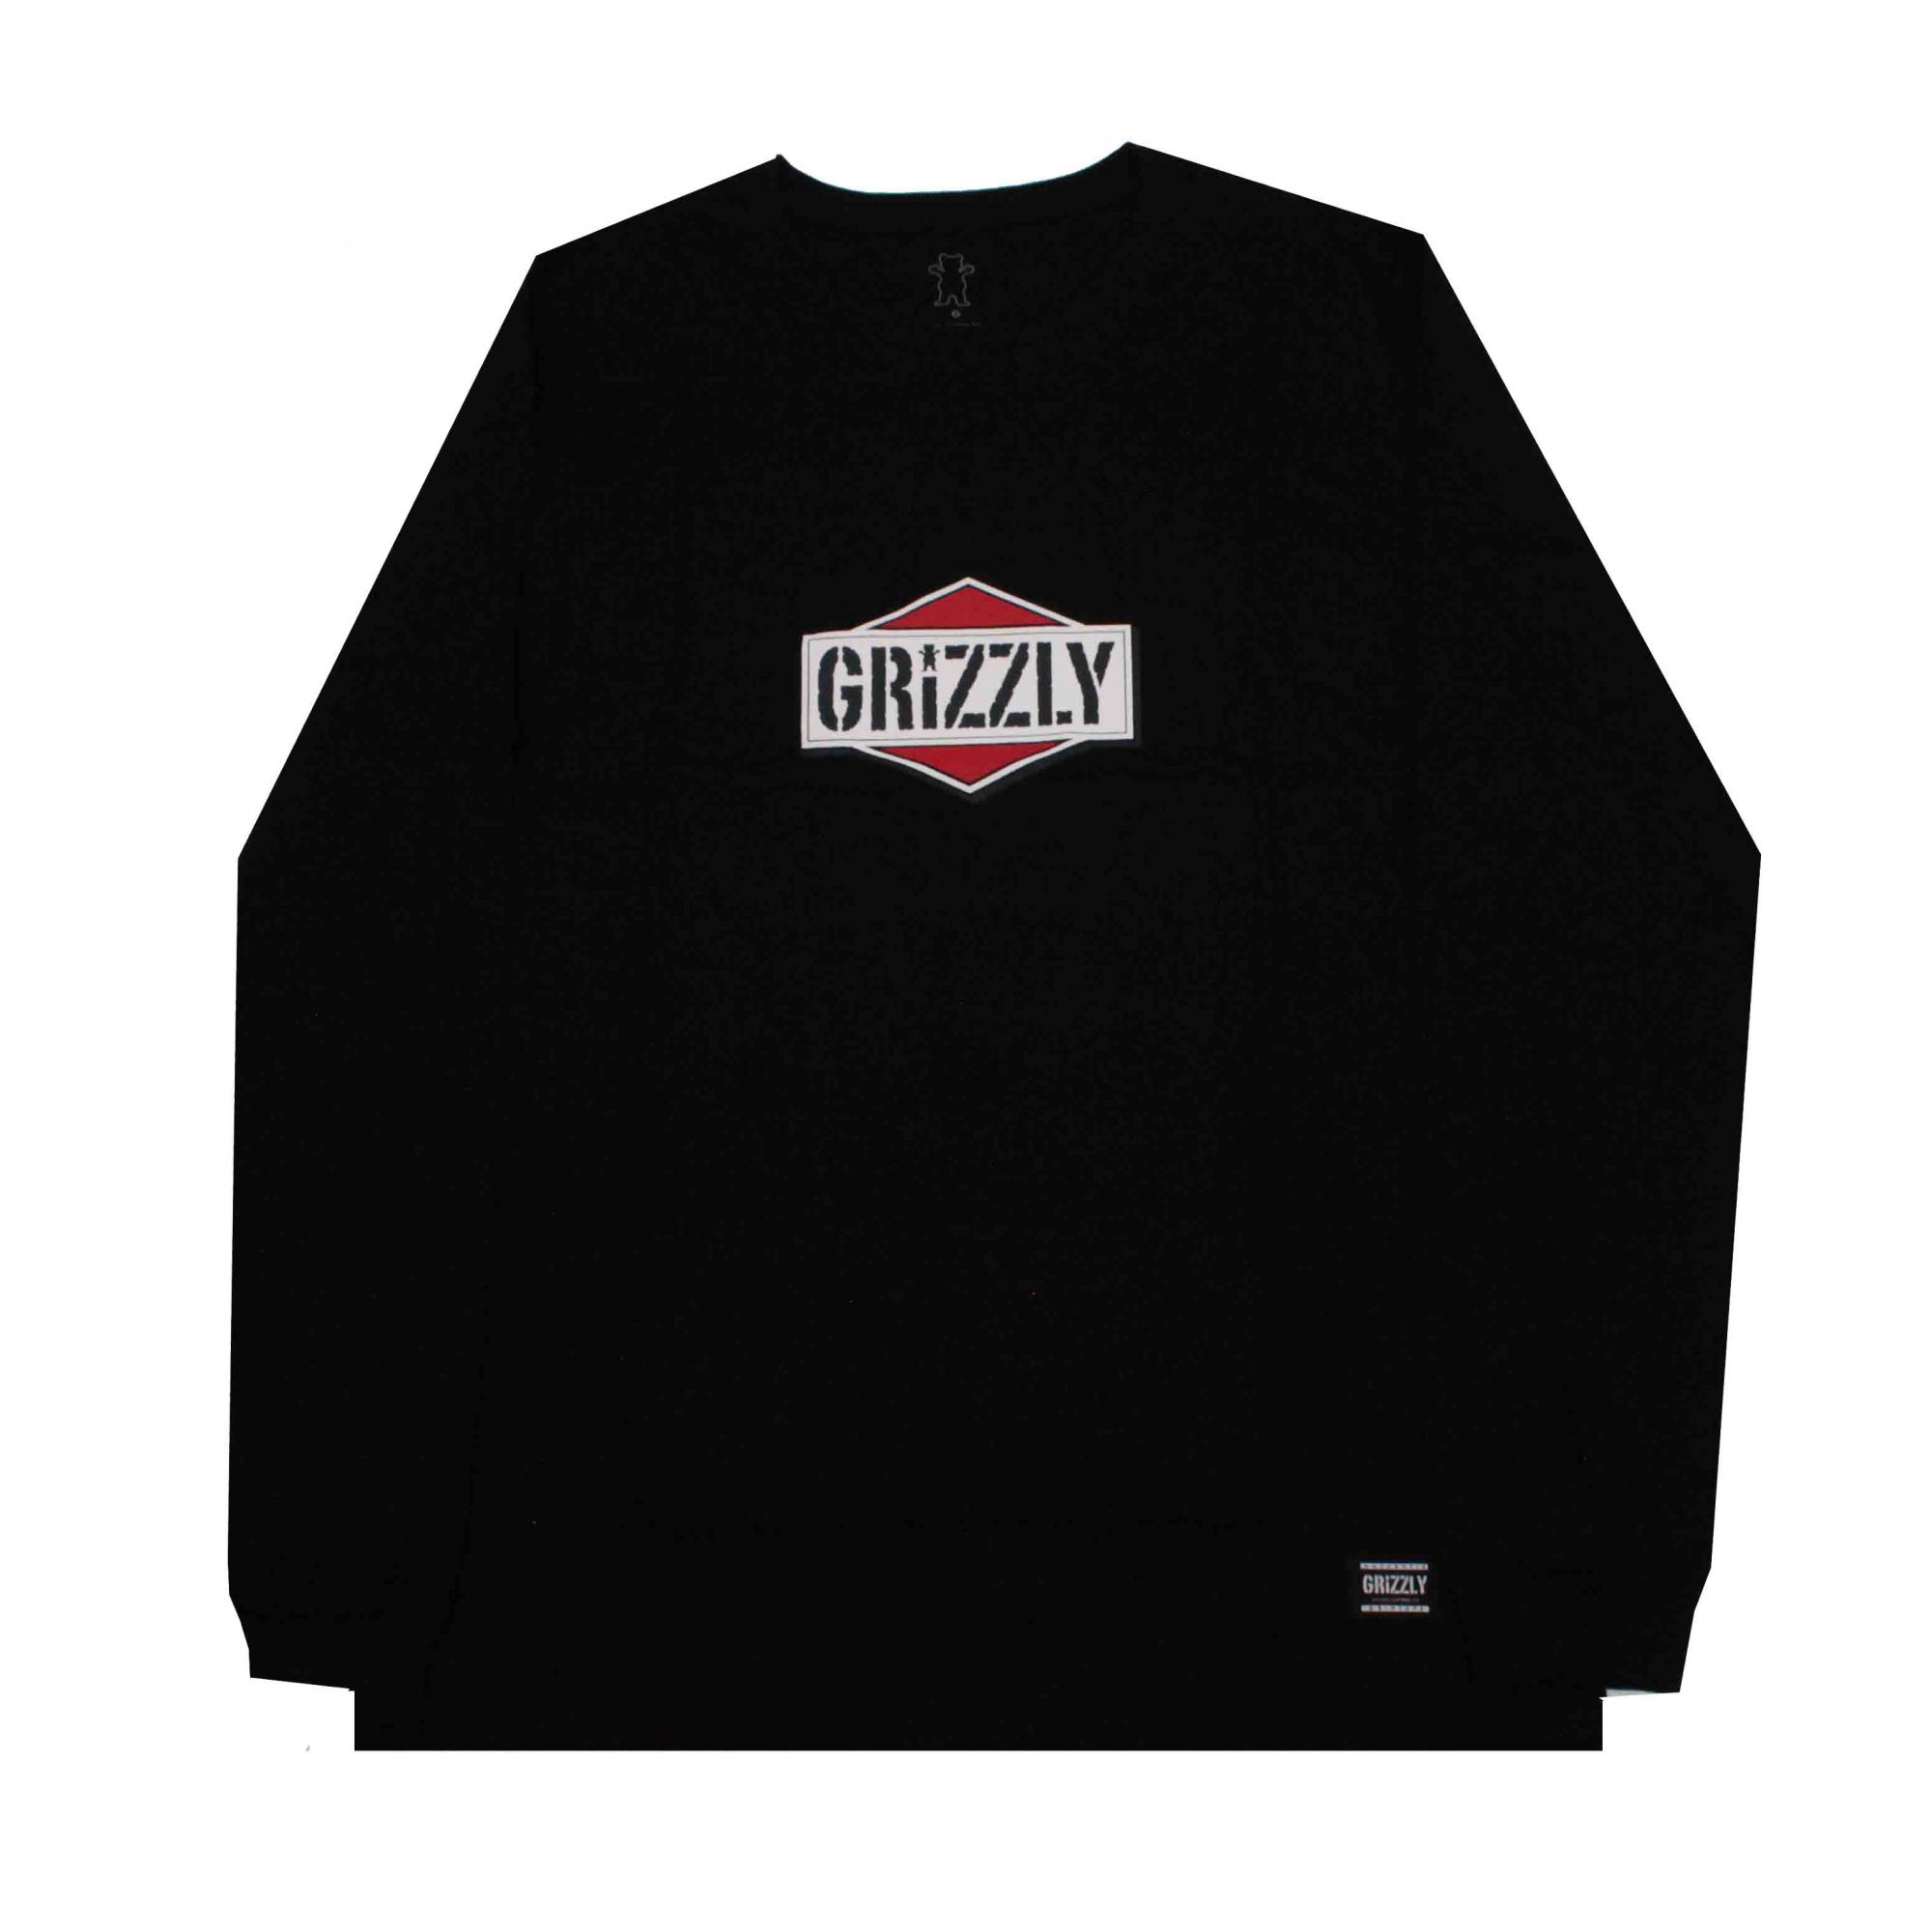 Camiseta Manga Longa Grizzly Family Og Grizz Black